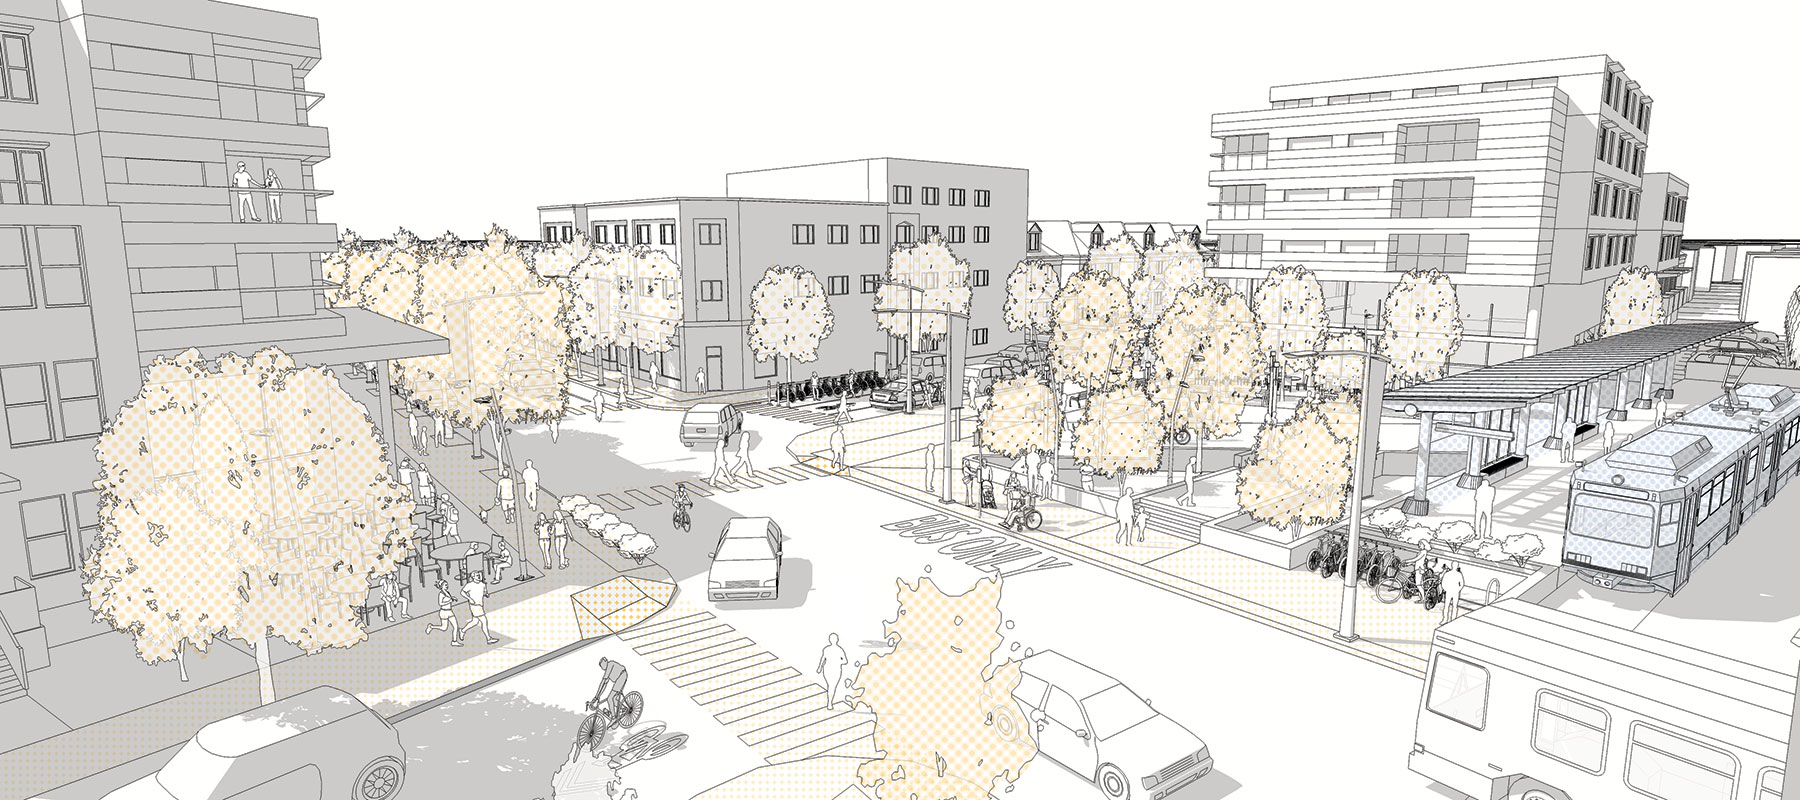 Example of an intersection with all the elements of successful transit-oriented development.